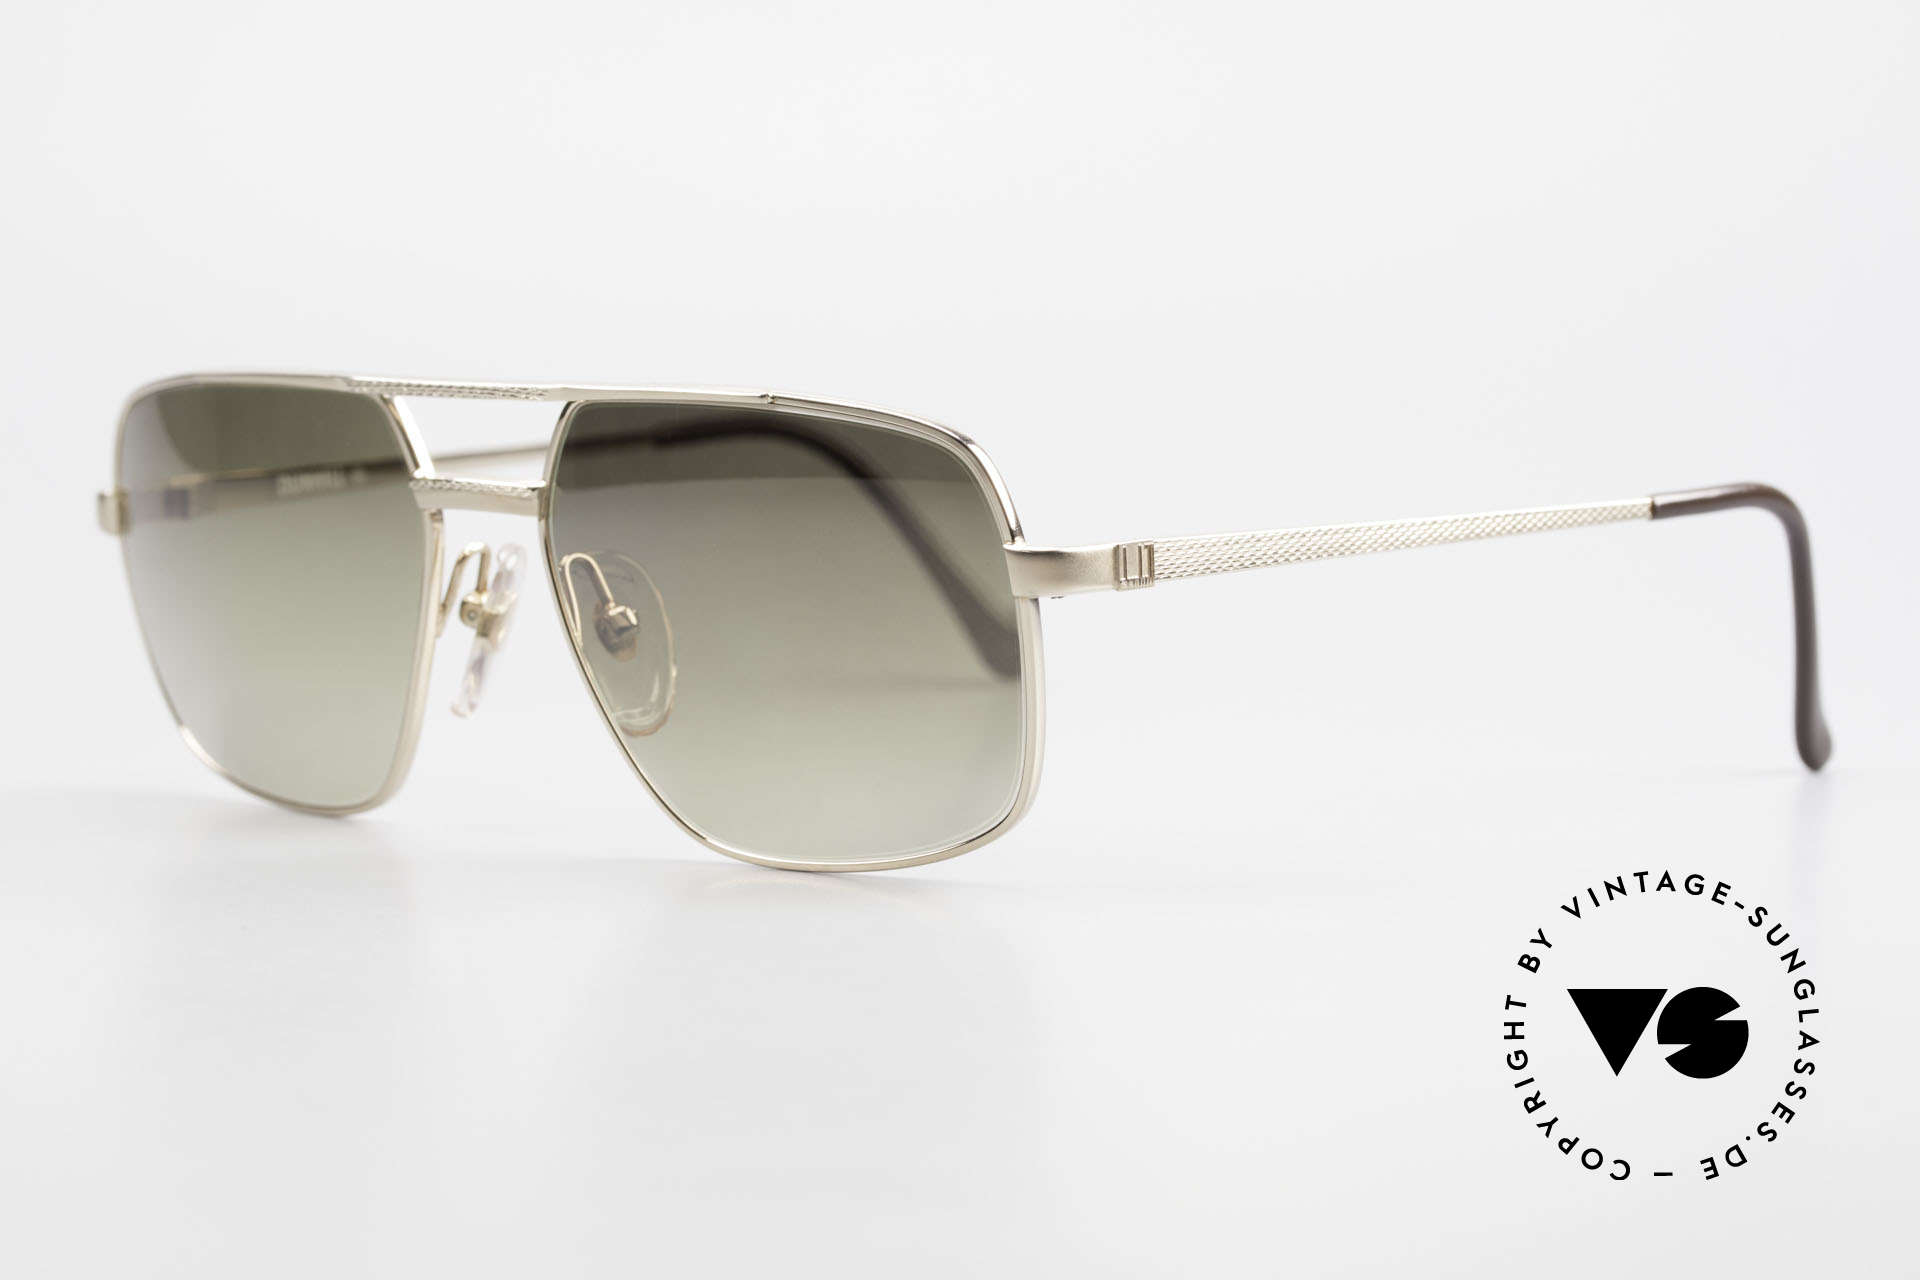 Dunhill 6068 Gold Doublé 14ct Gold Filled, this Dunhill model is at the top of the eyewear sector, Made for Men